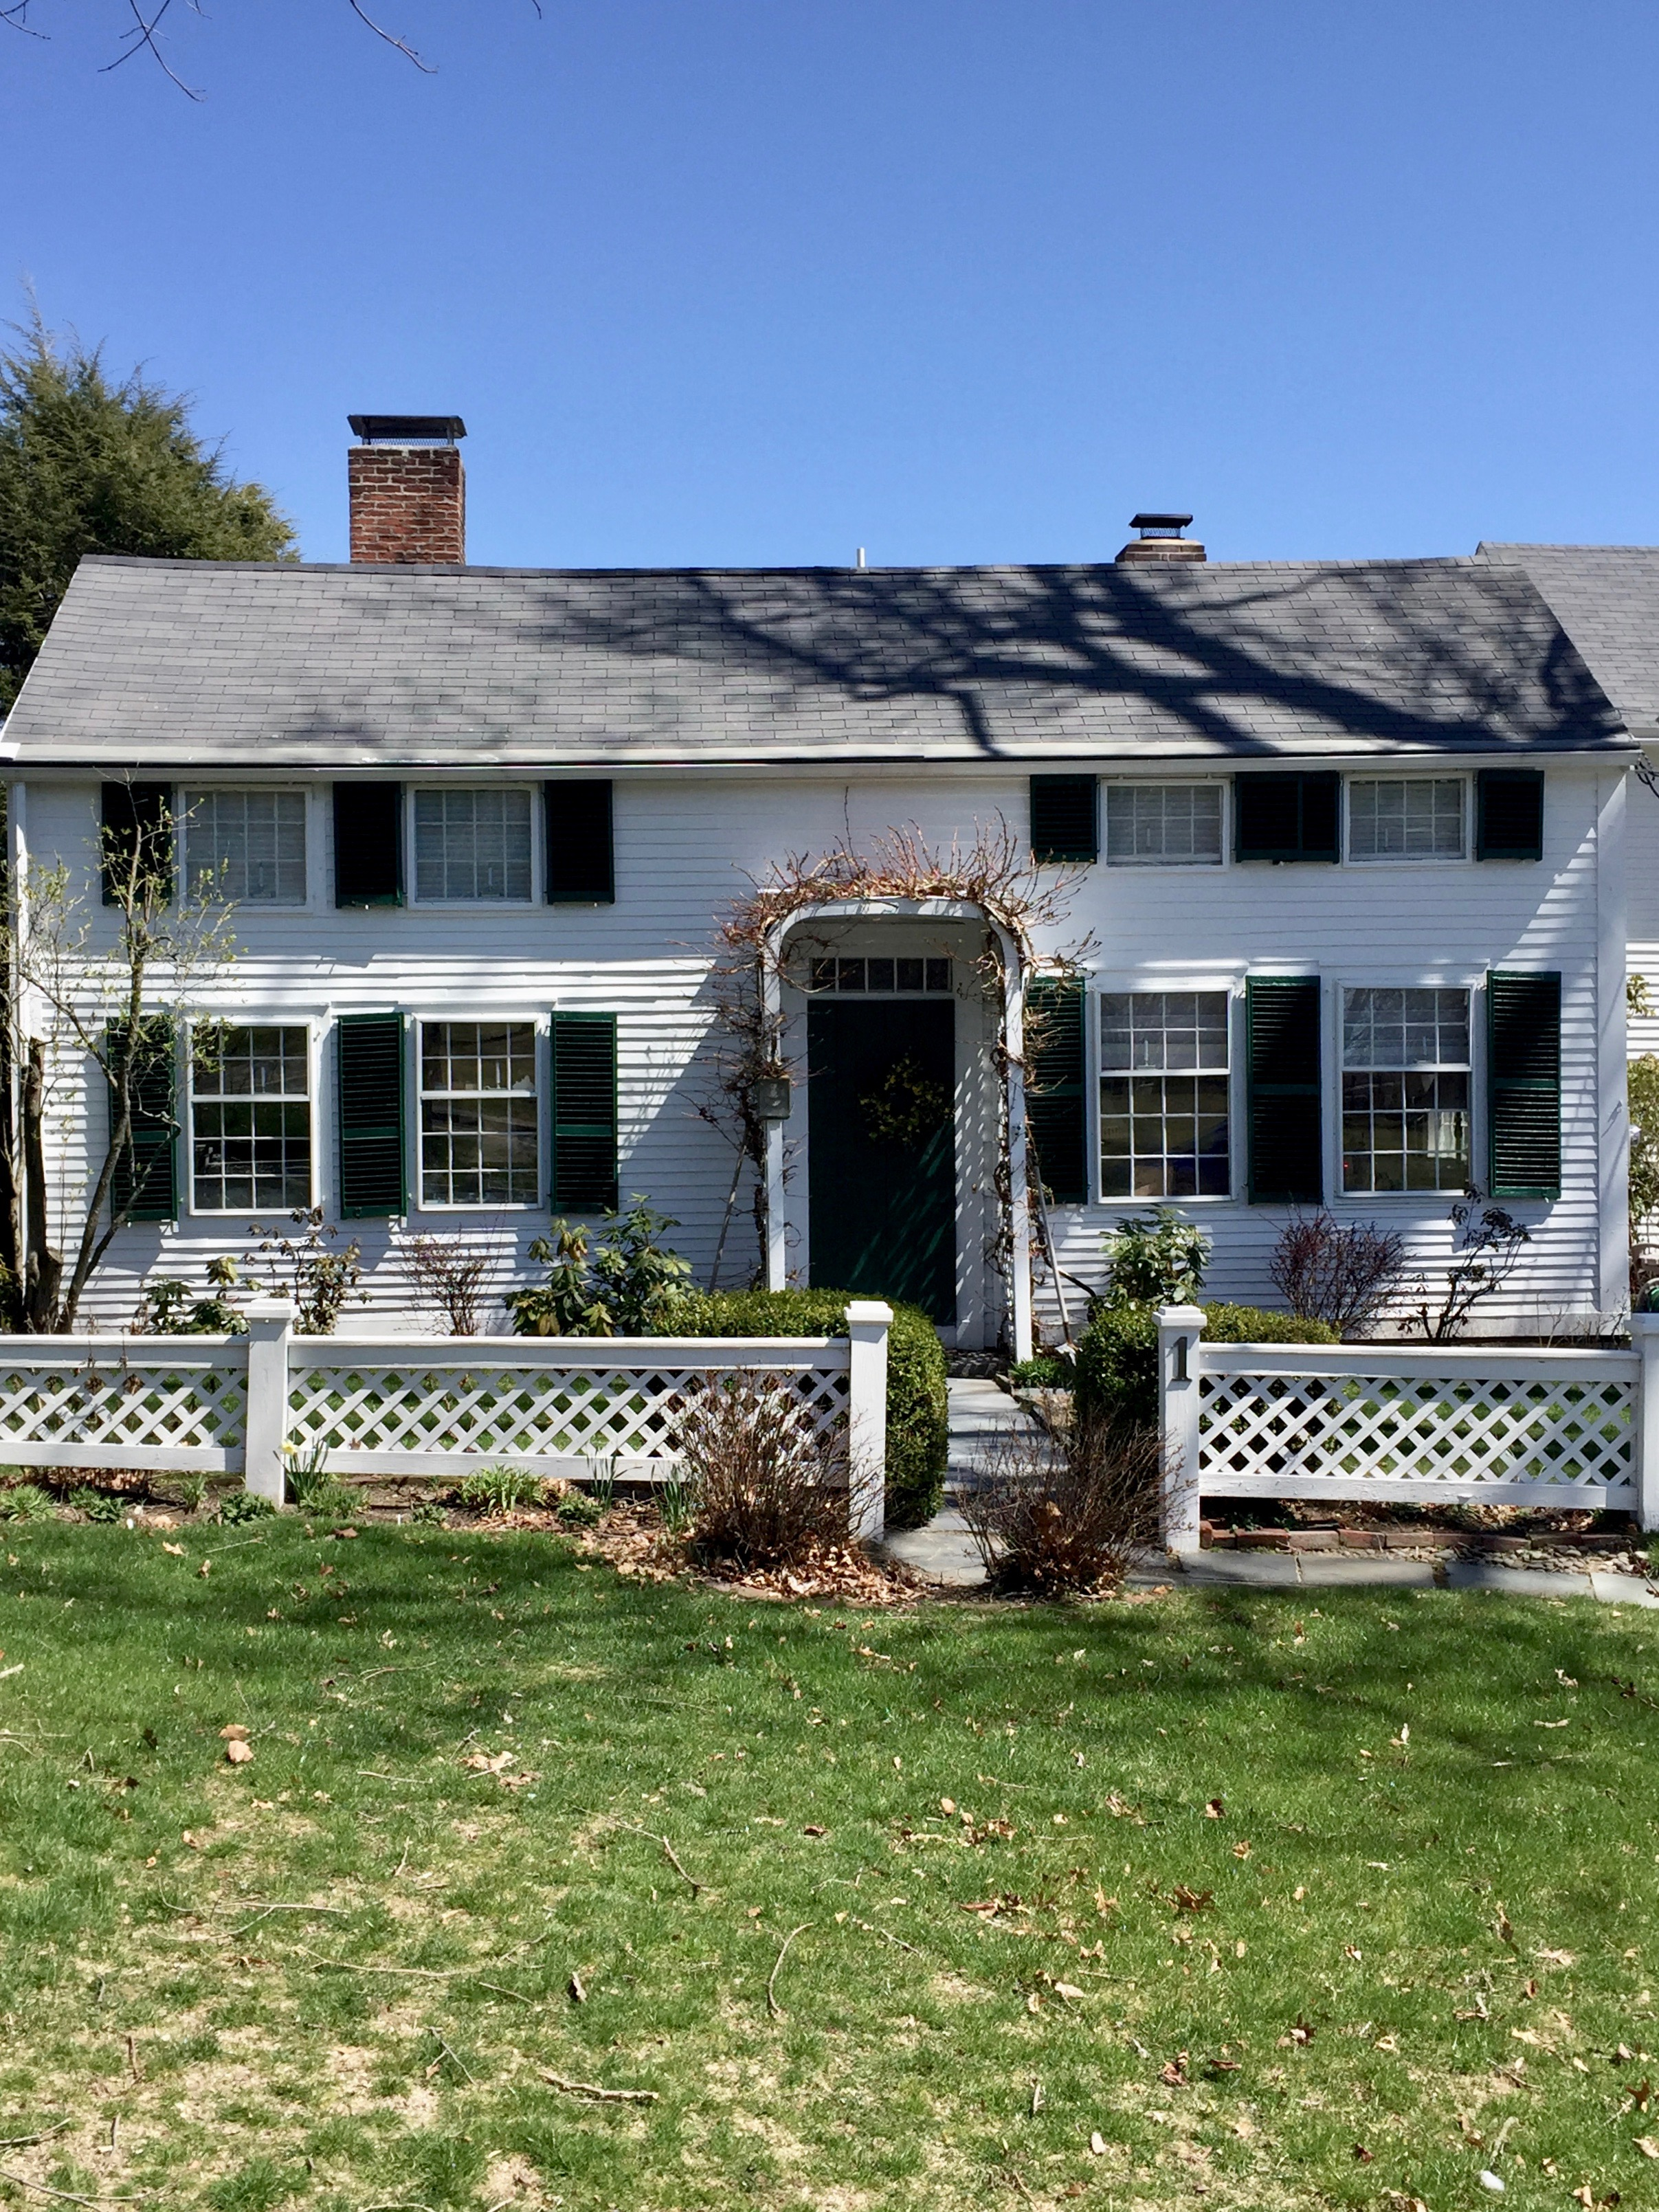 Harvard antique historic home white house green trim New England style home.jpg